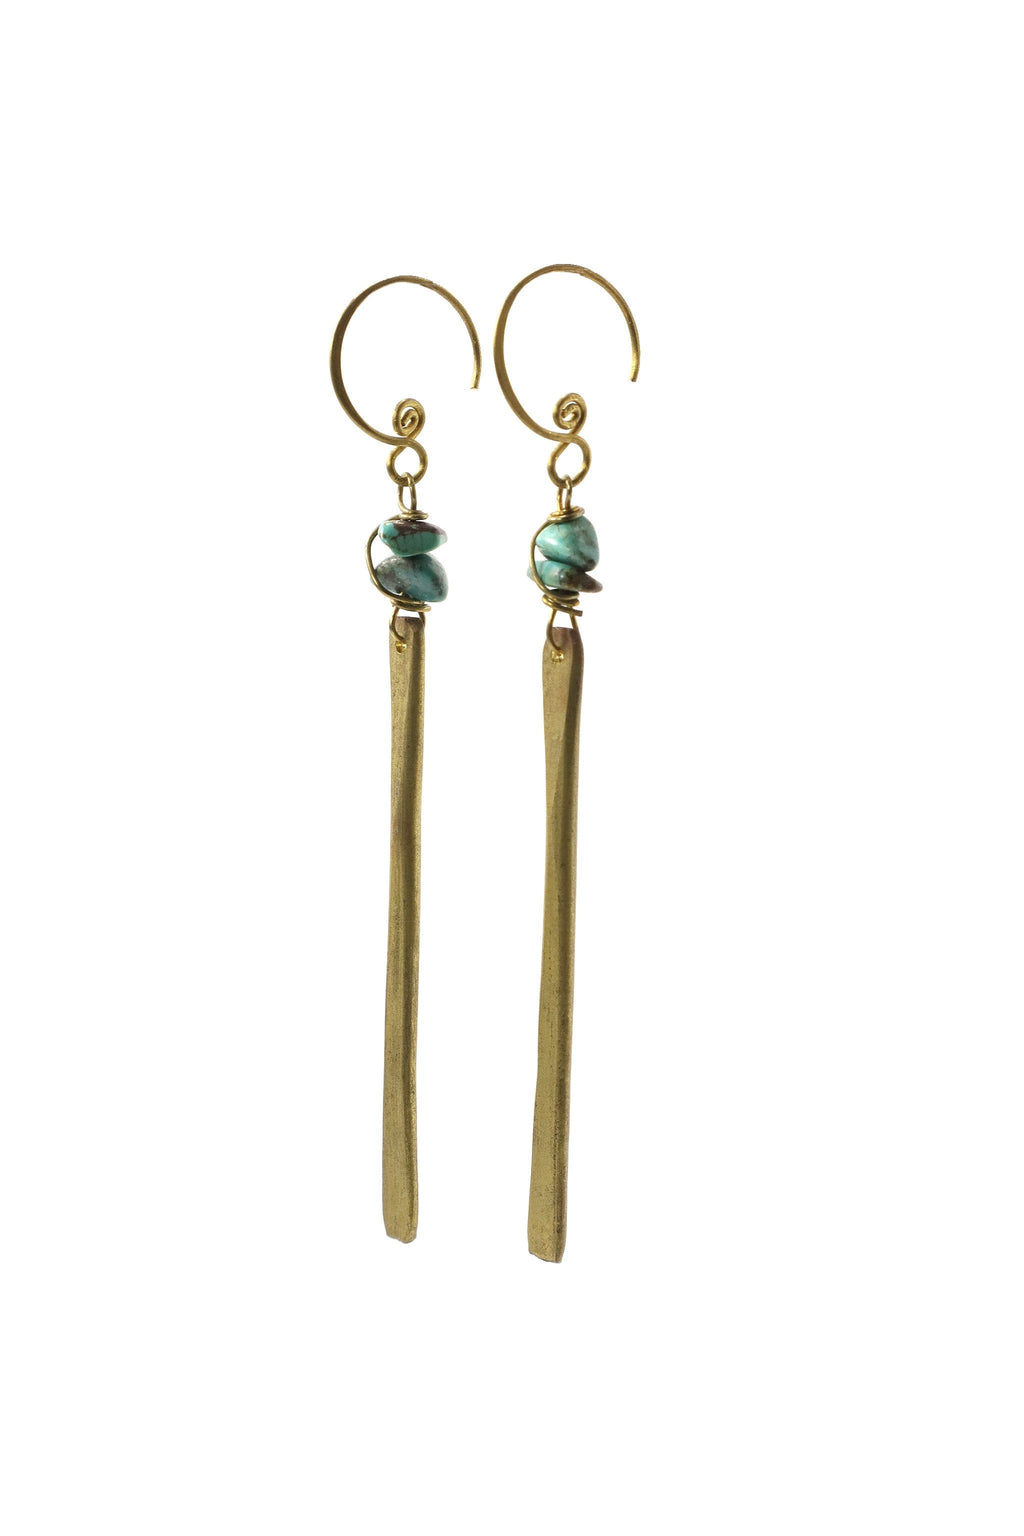 These handmade brass, bar earrings feature turquoise gemstone chips. This product is handmade and fairtrade in Thailand.